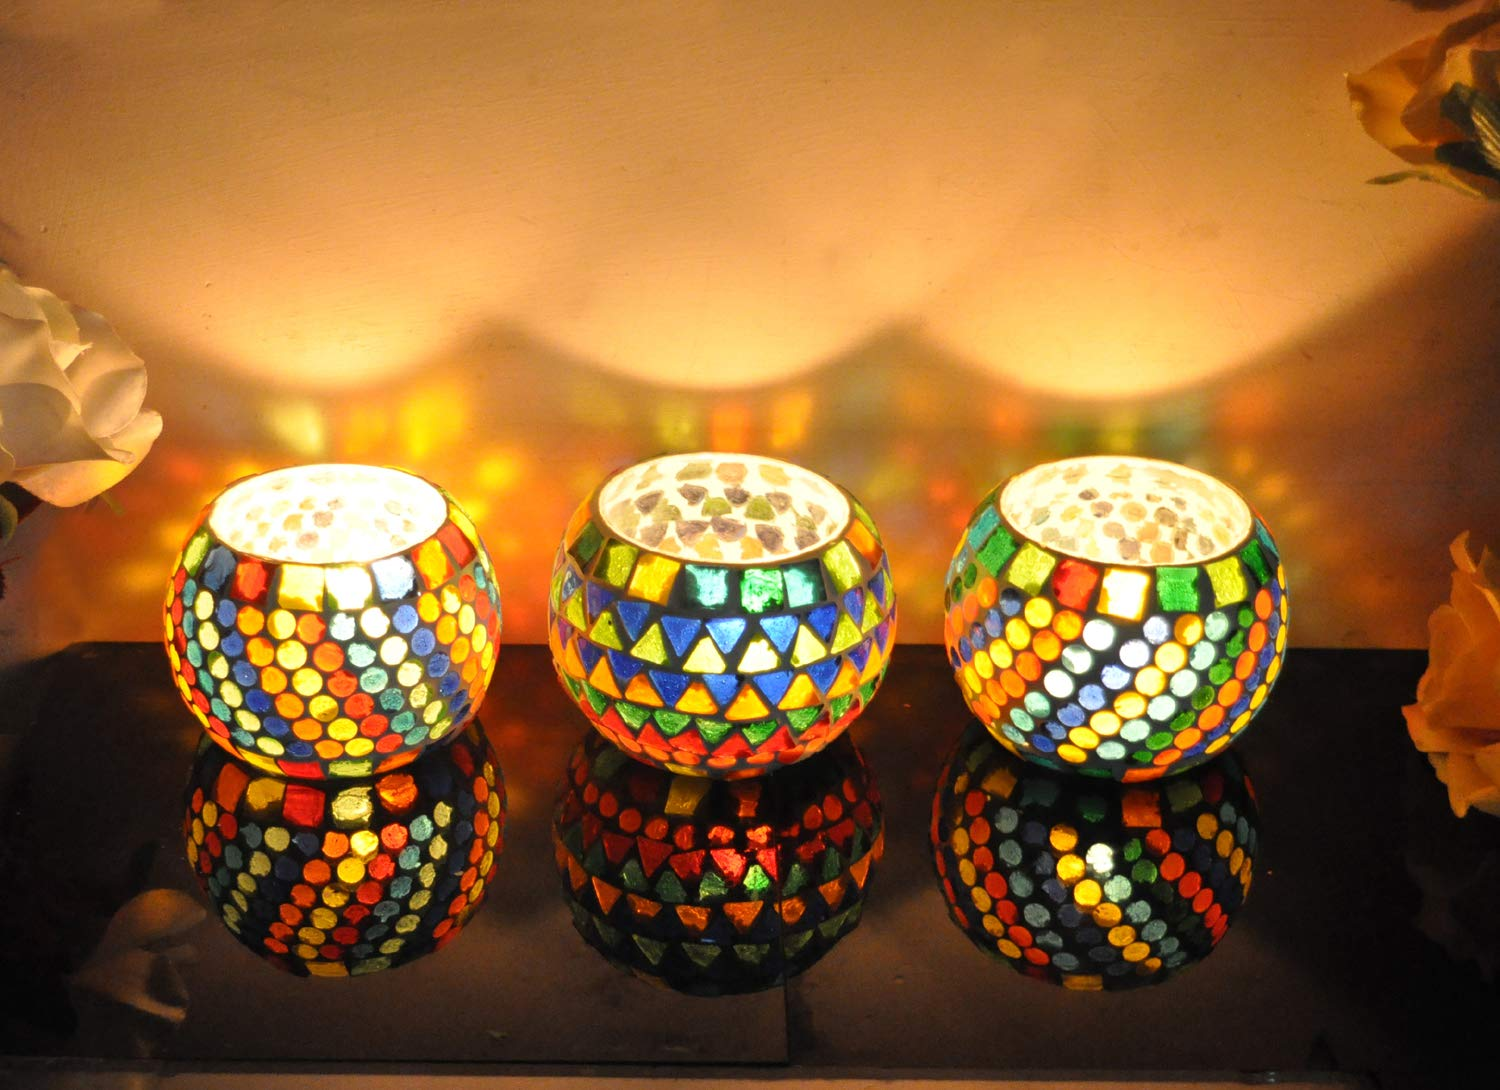 8 x 8 Cm Set of 3 Lal Haveli Ethnic Pink Color Mosaic Glass Tea Light Candle Holders for Room decoration